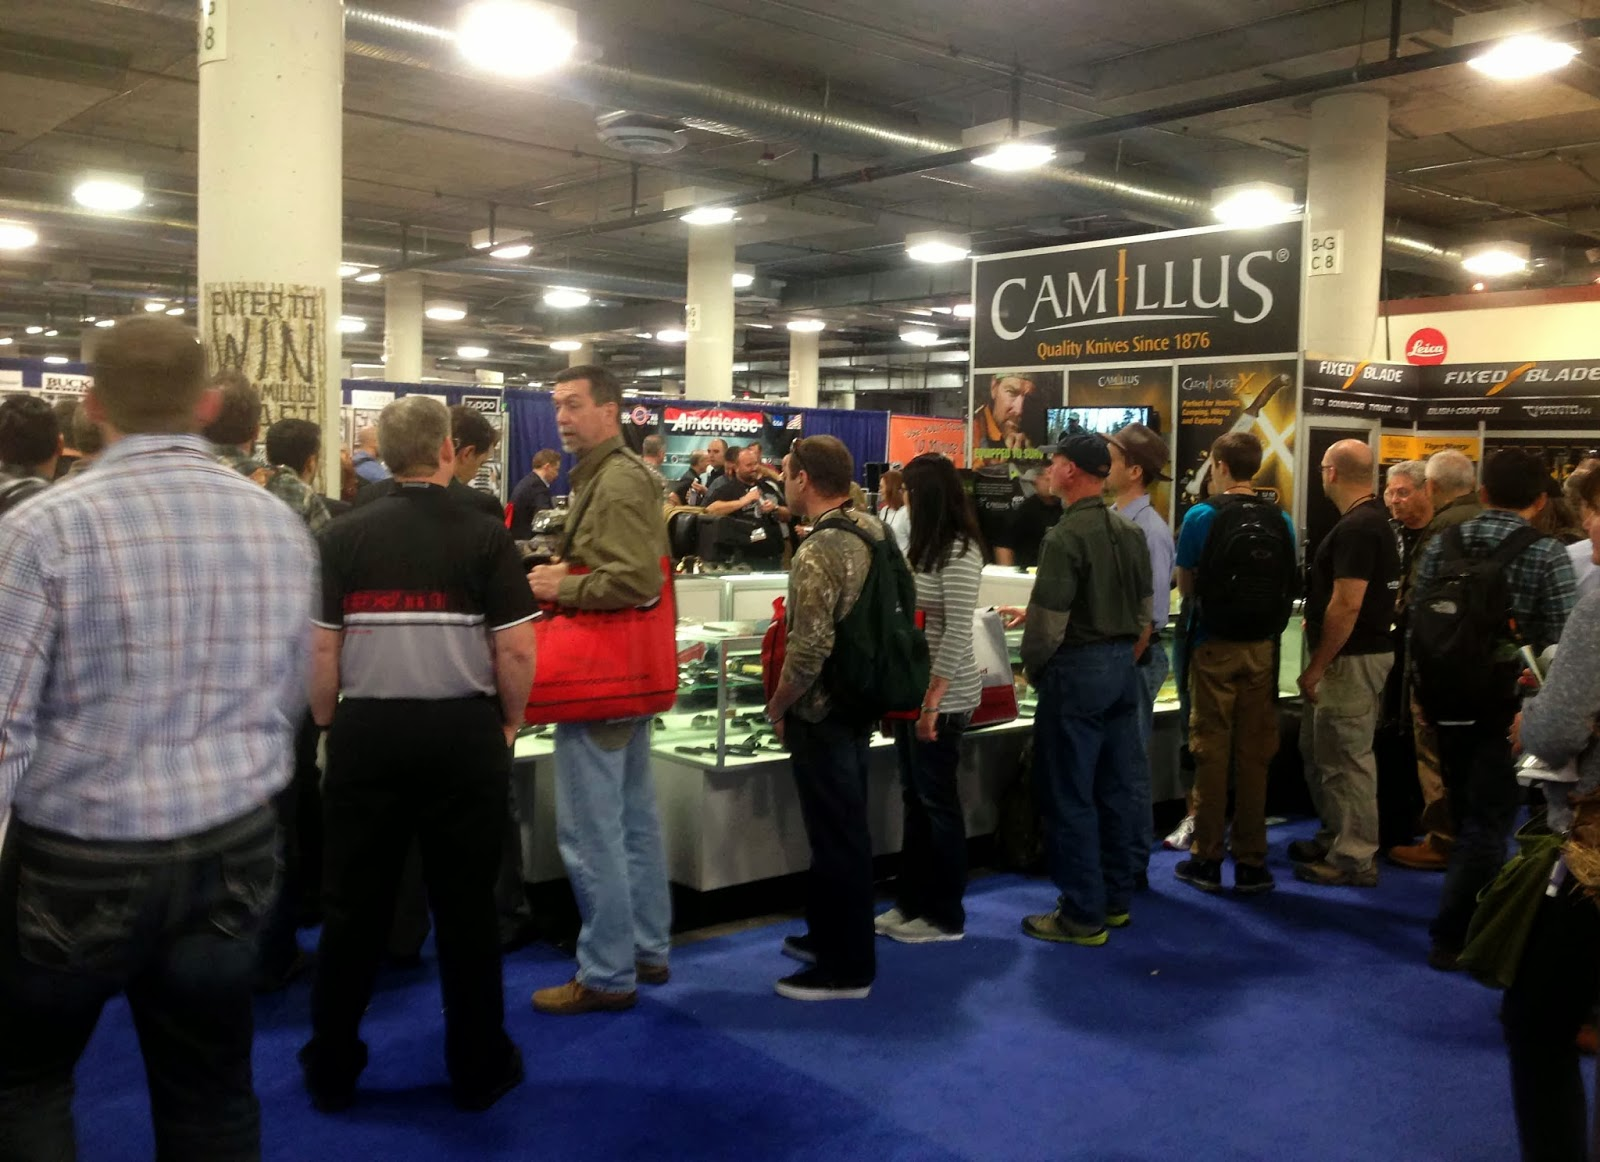 Rocky mountain bushcraft shot show 2014 first impression review -  Hours Conversing With Fans And Sharing Survival Stories At The Camillus Knives Booth On The Second Day Of Shot Show Posted By Rocky Mountain Bushcraft